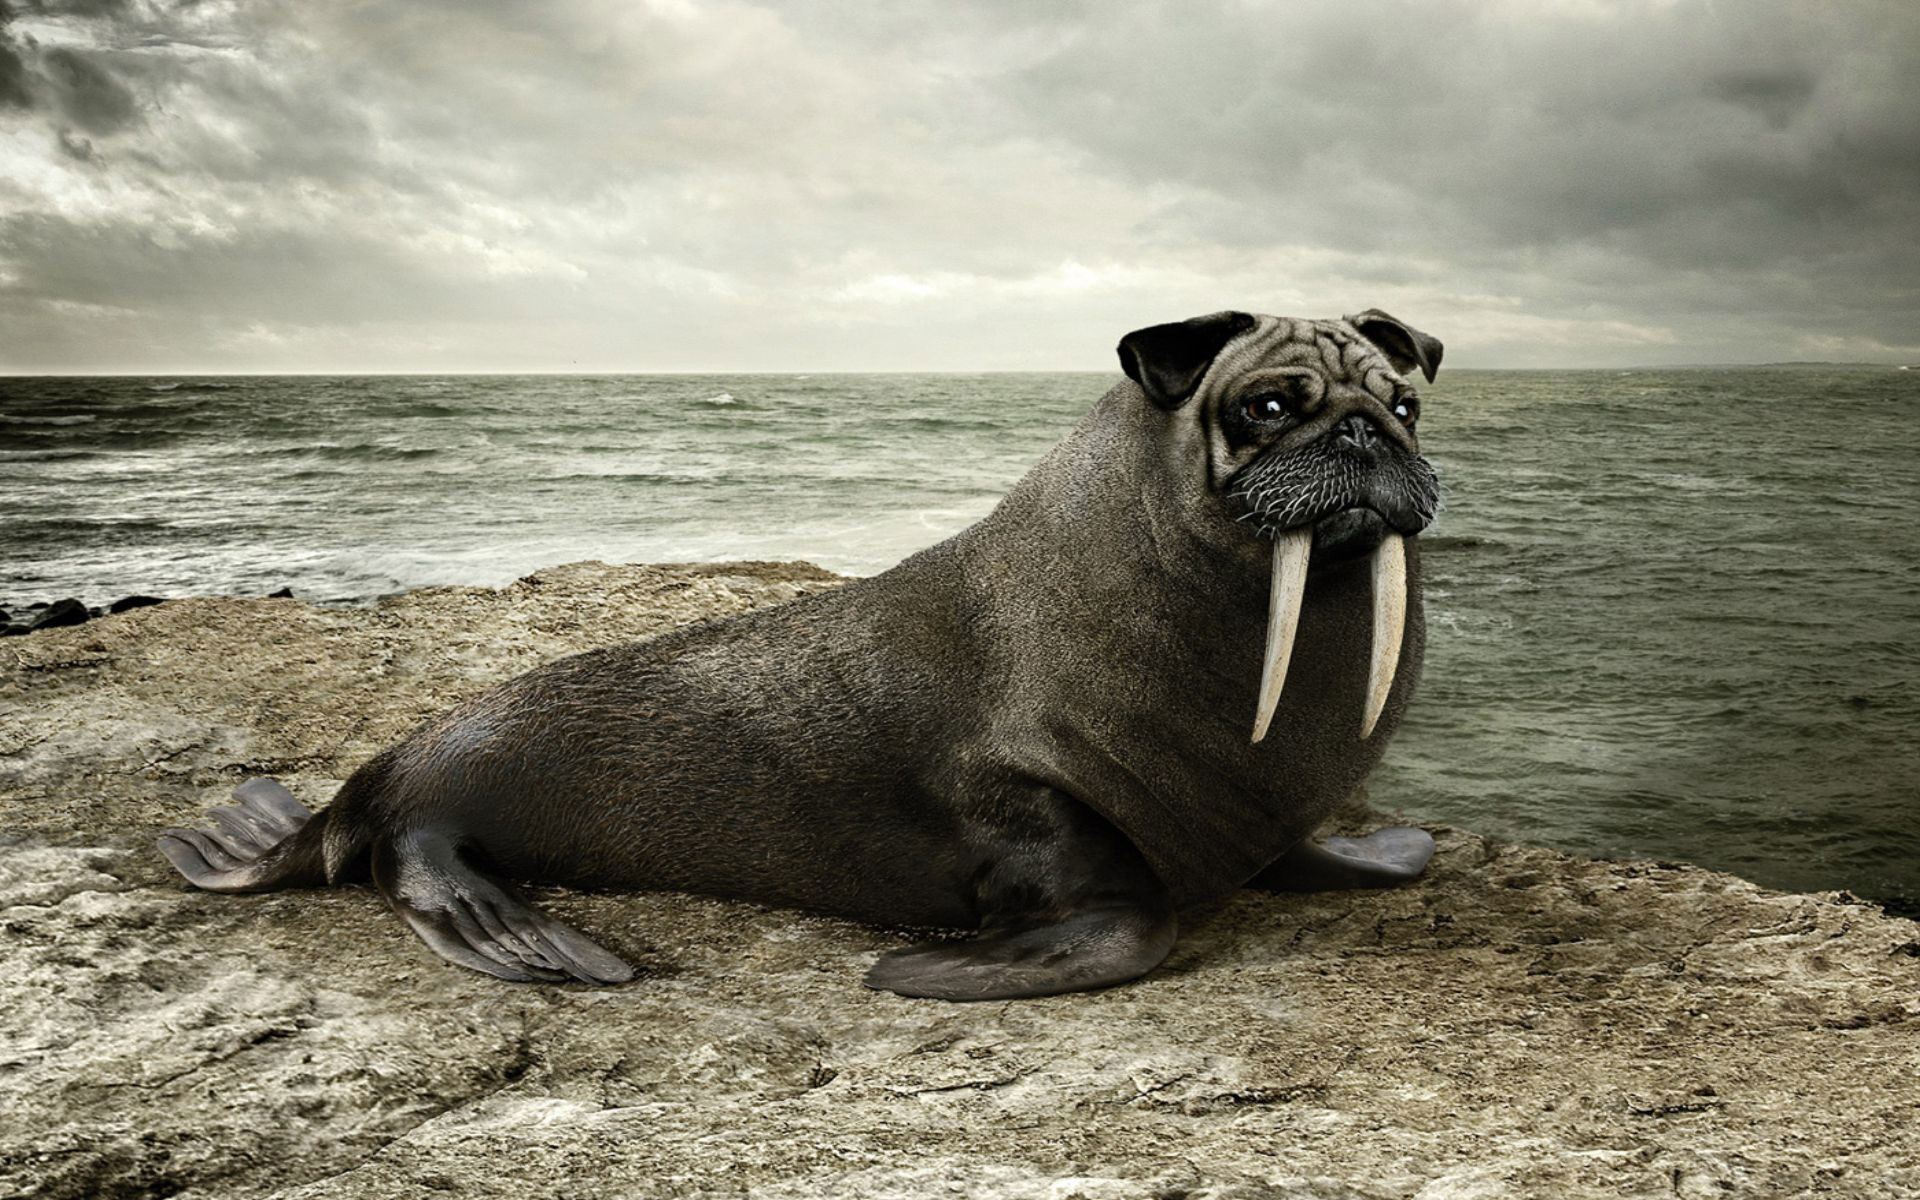 Cute Wallpaper Pictures Free Download Sea Lion Hd Wallpapers